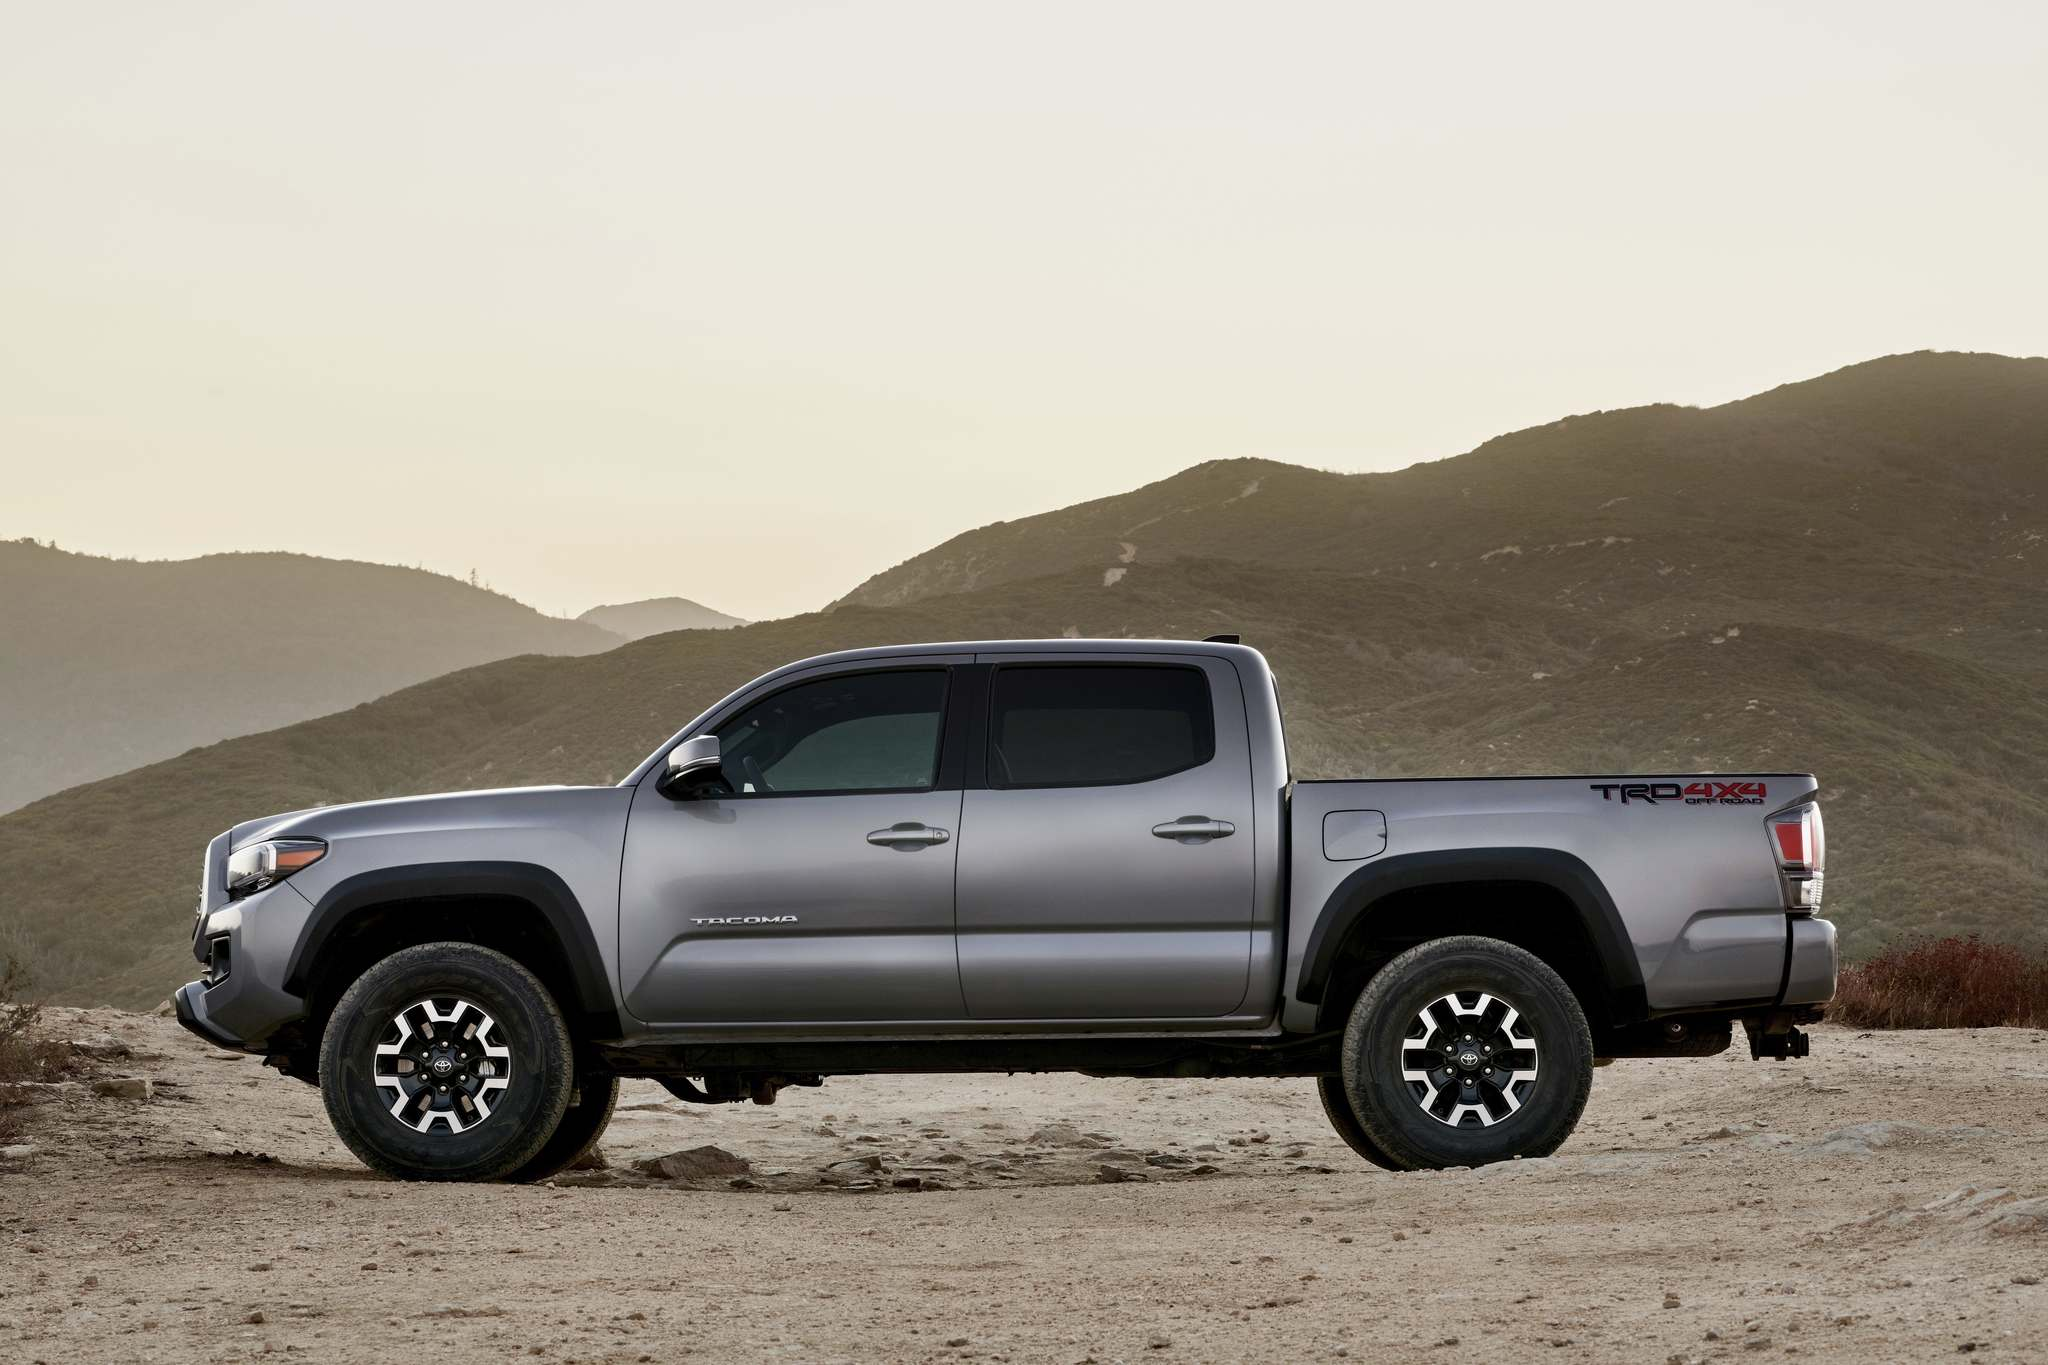 Toyota's 2020 Tacoma Off-Road comes standard with TRD-tuned Bilstein shocks, a locking rear differential and Hill Start Assist Control.